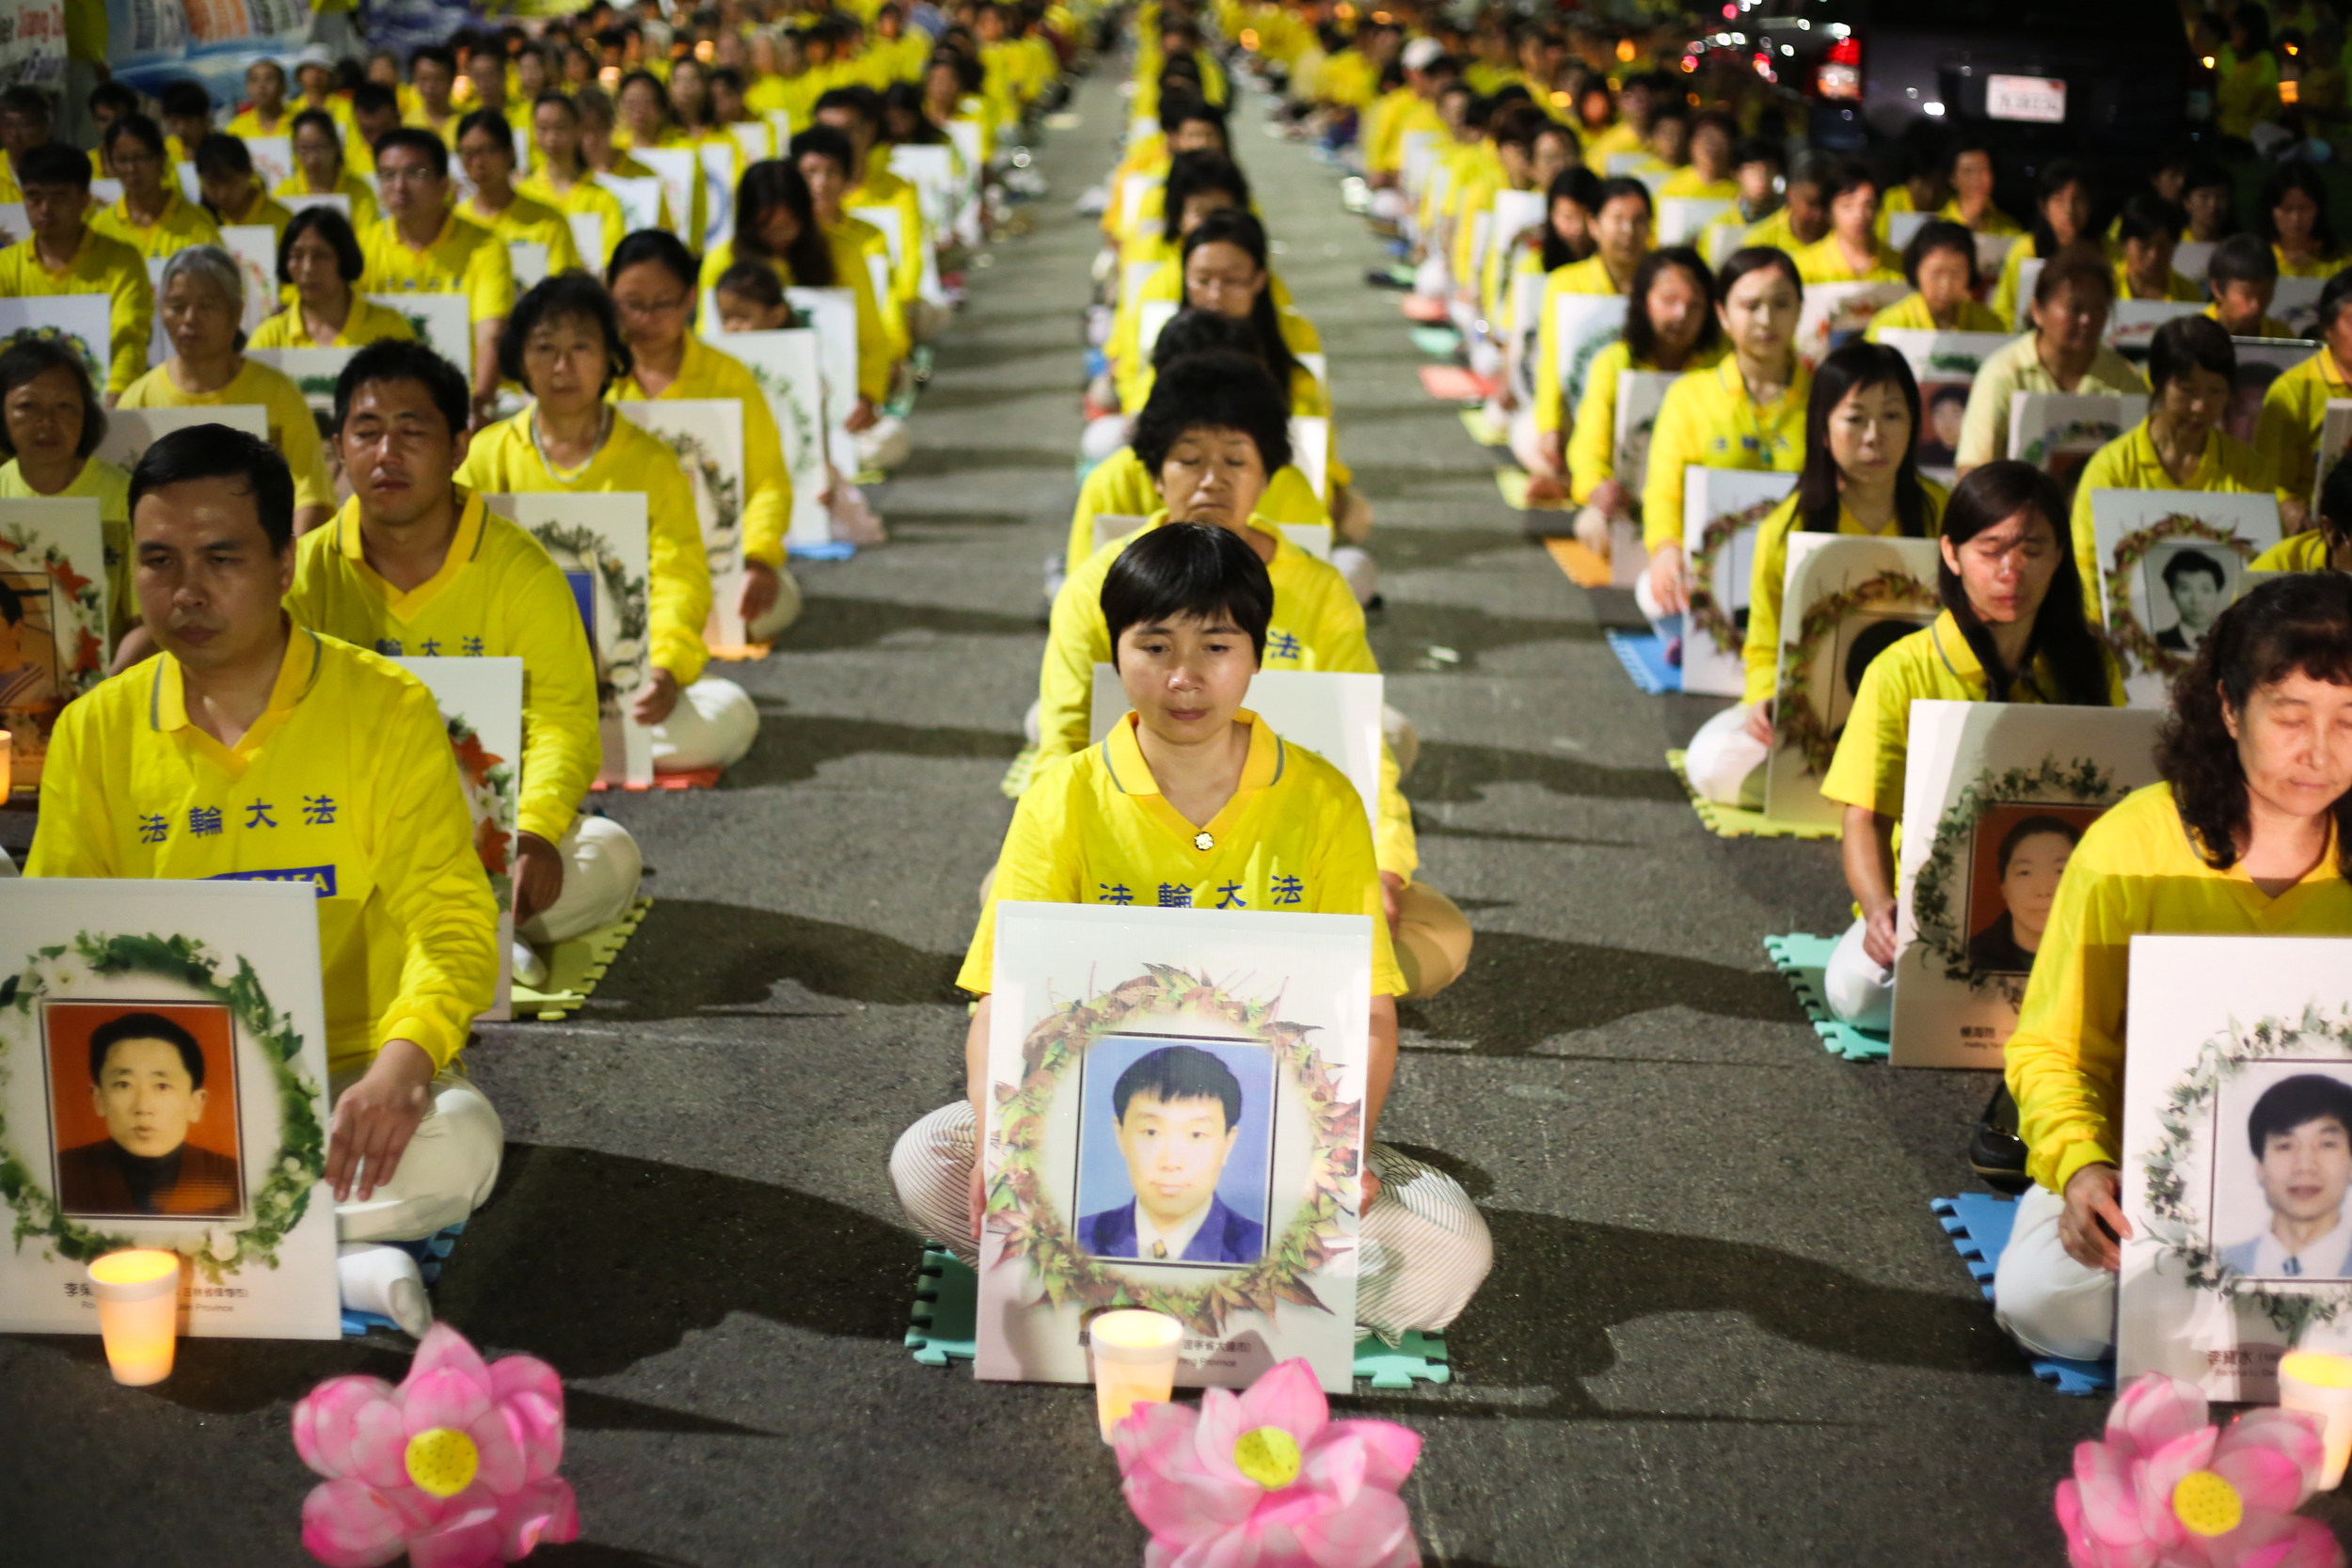 Falun Gong practitioners demanding that former Chinese leader Jiang Zemin be brought to justice, hold a candlelight vigil in front of the Chinese Consulate in Los Angeles on Oct. 15, 2105, for those who have died during the 16 year persecution in China. (Benjamin Chasteen/Epoch Times)